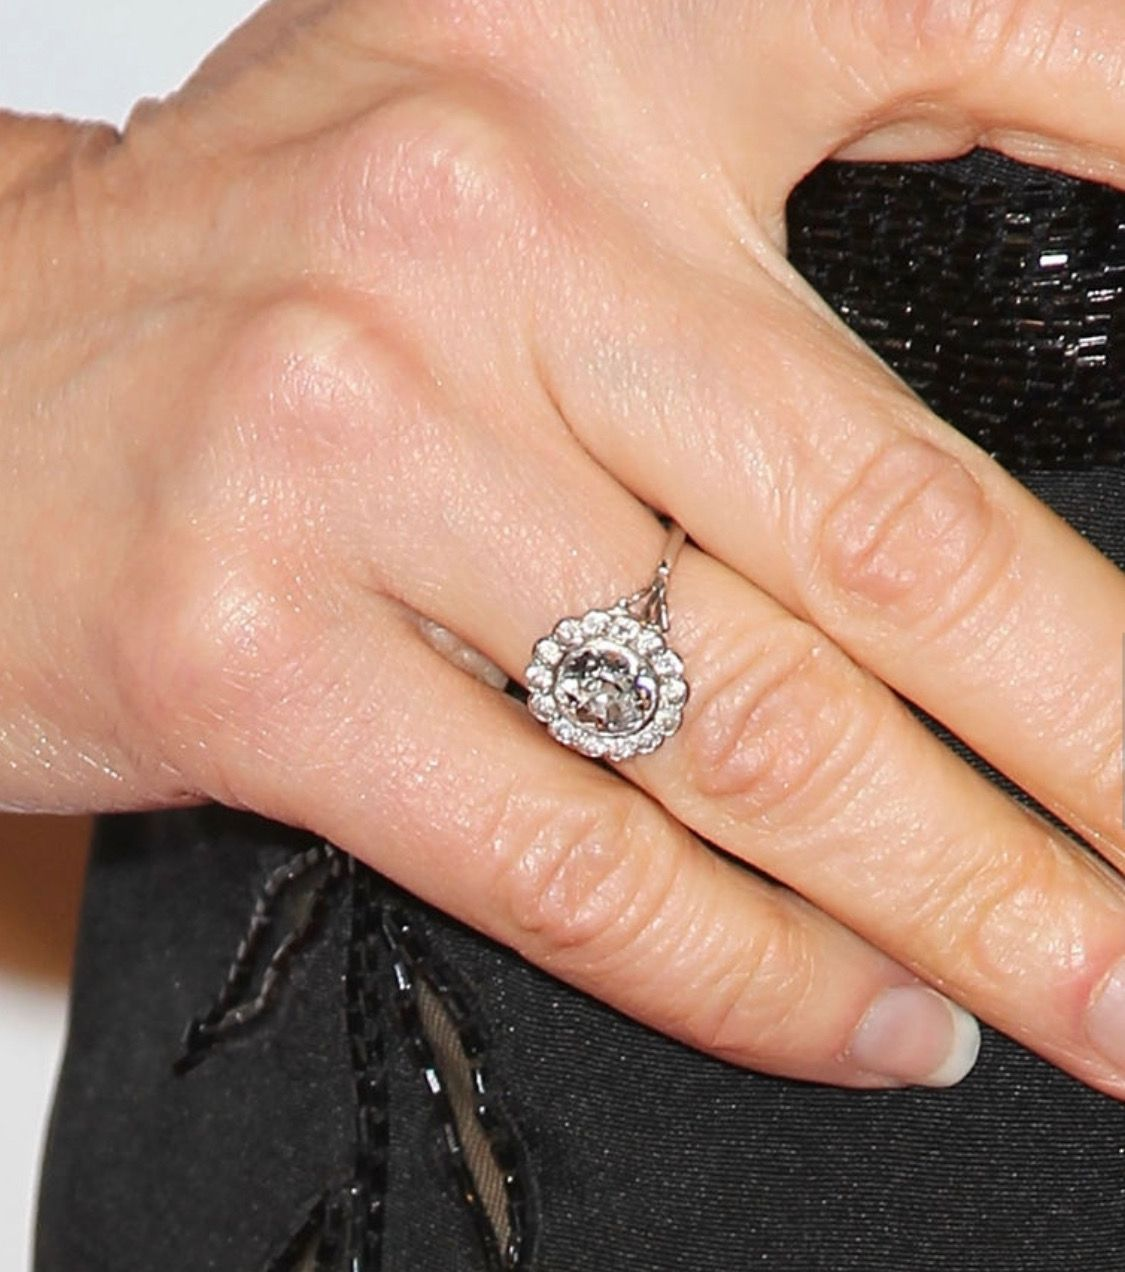 Kyra Sedgwick always wears her pretty floral engagement